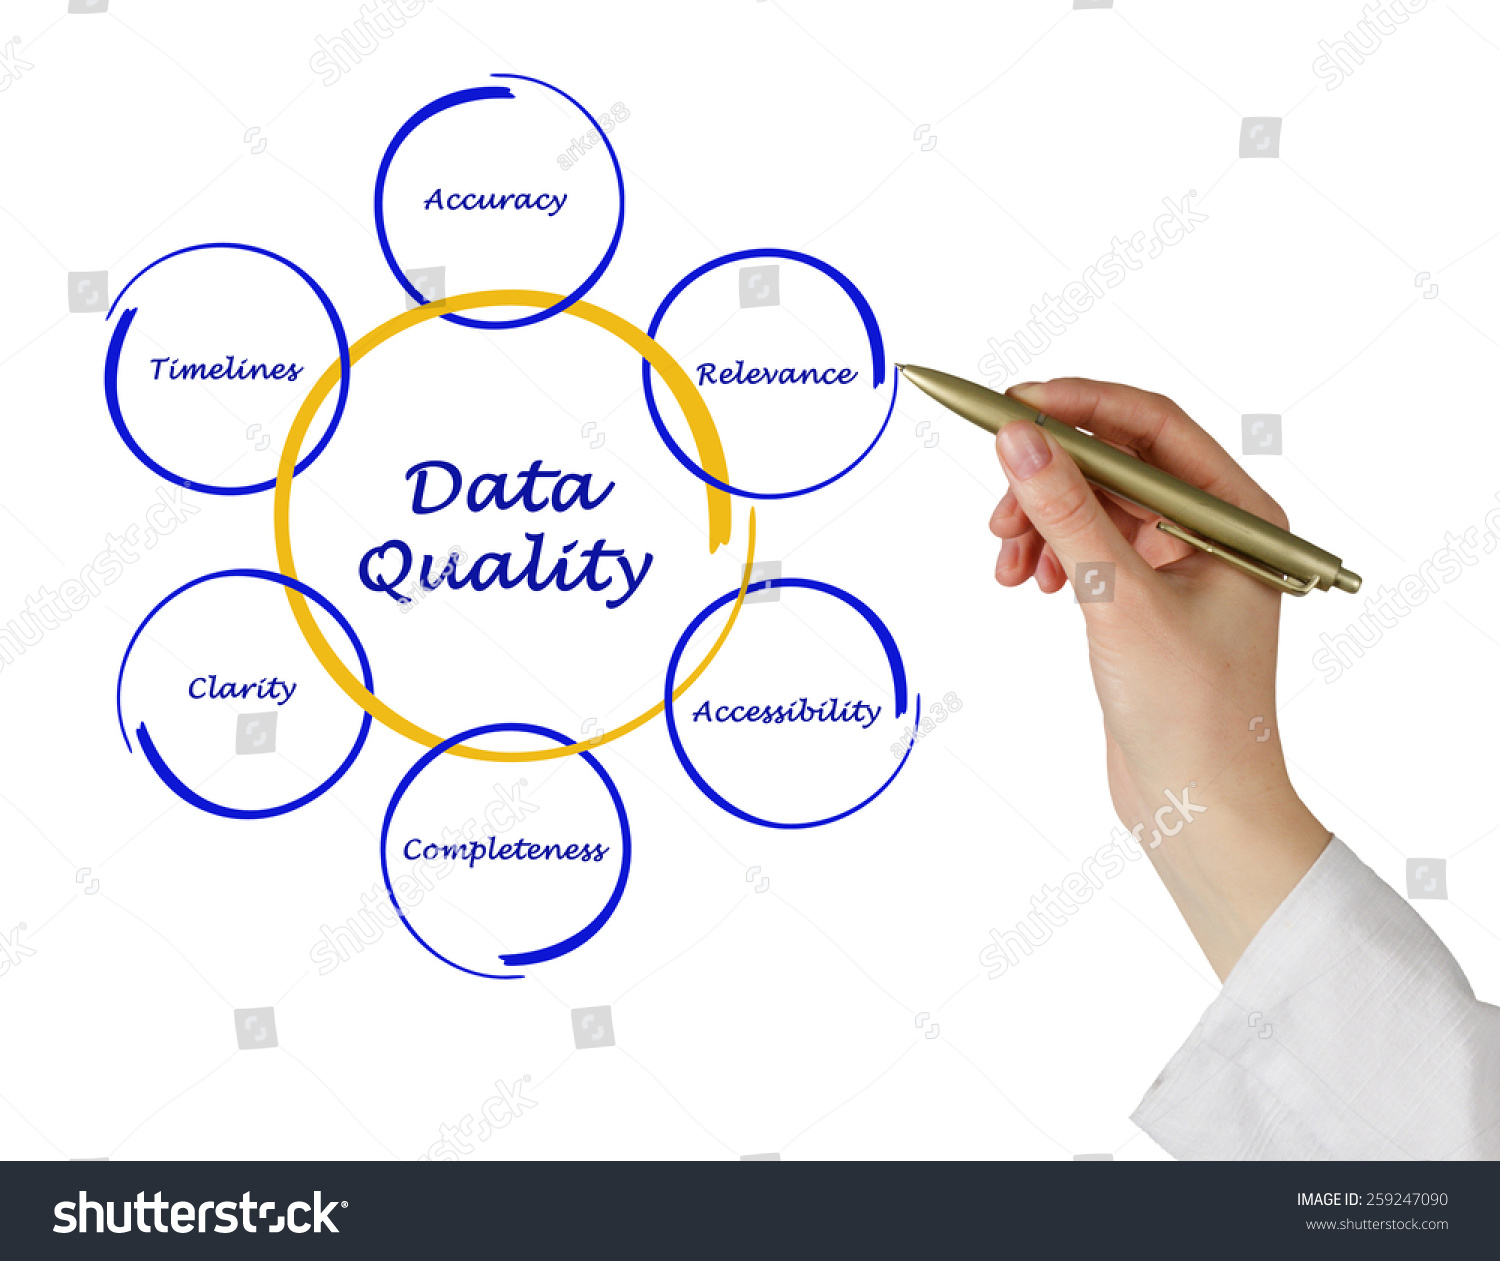 Diagram Of Data Quality Stock Photo 259247090   Shutterstock